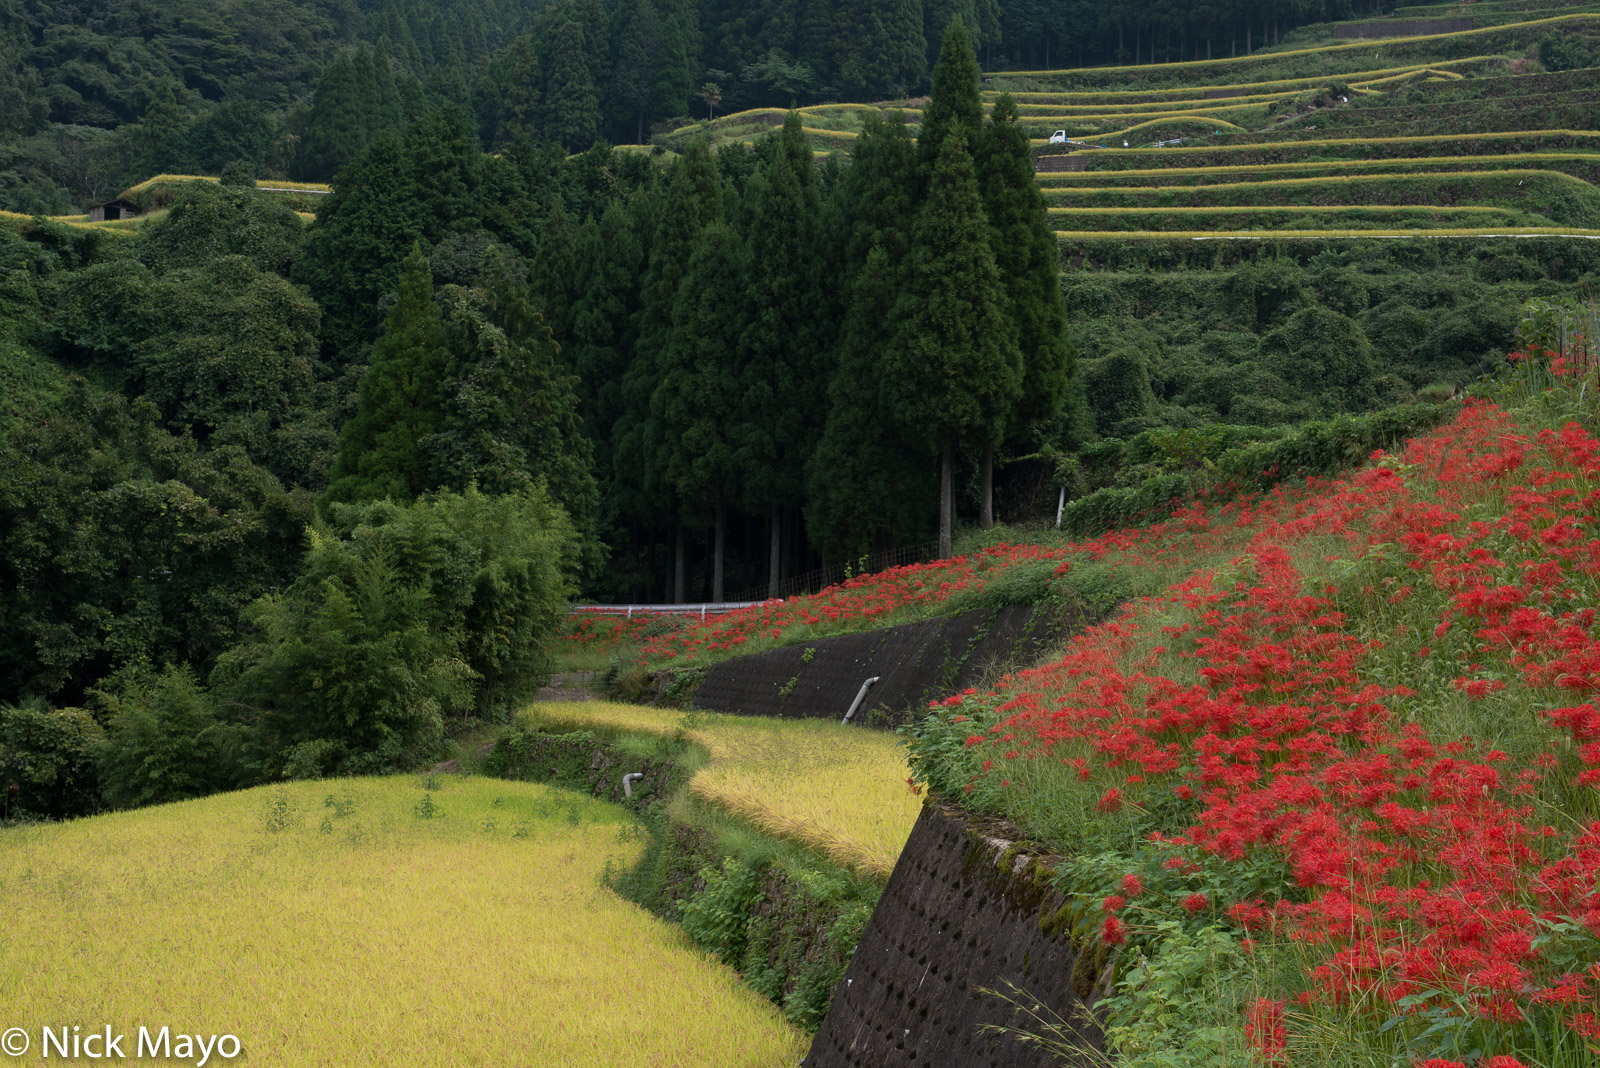 Contrasting vivid colours around the paddy rice fields at Warabino.